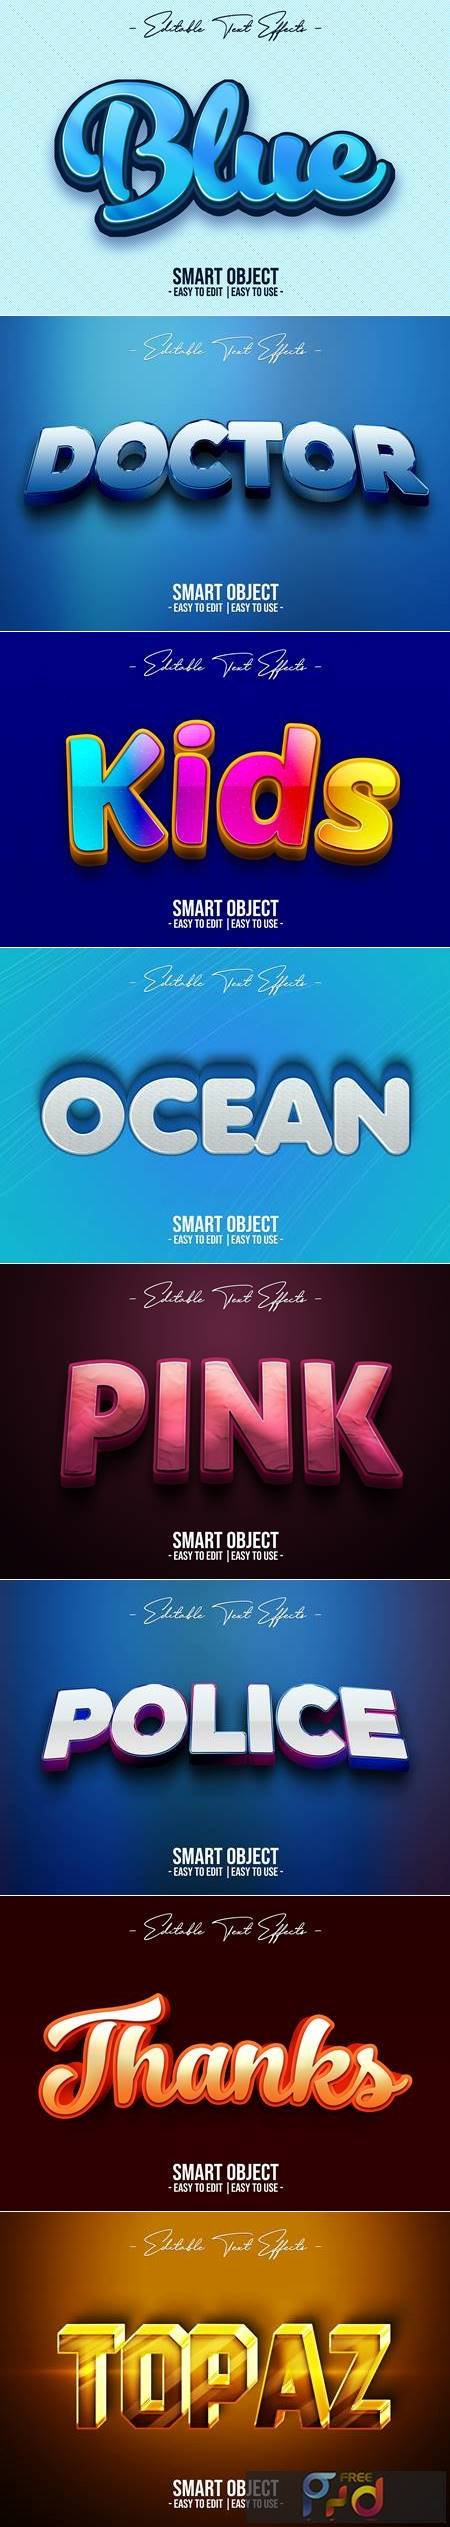 Text Effects Style 4 1